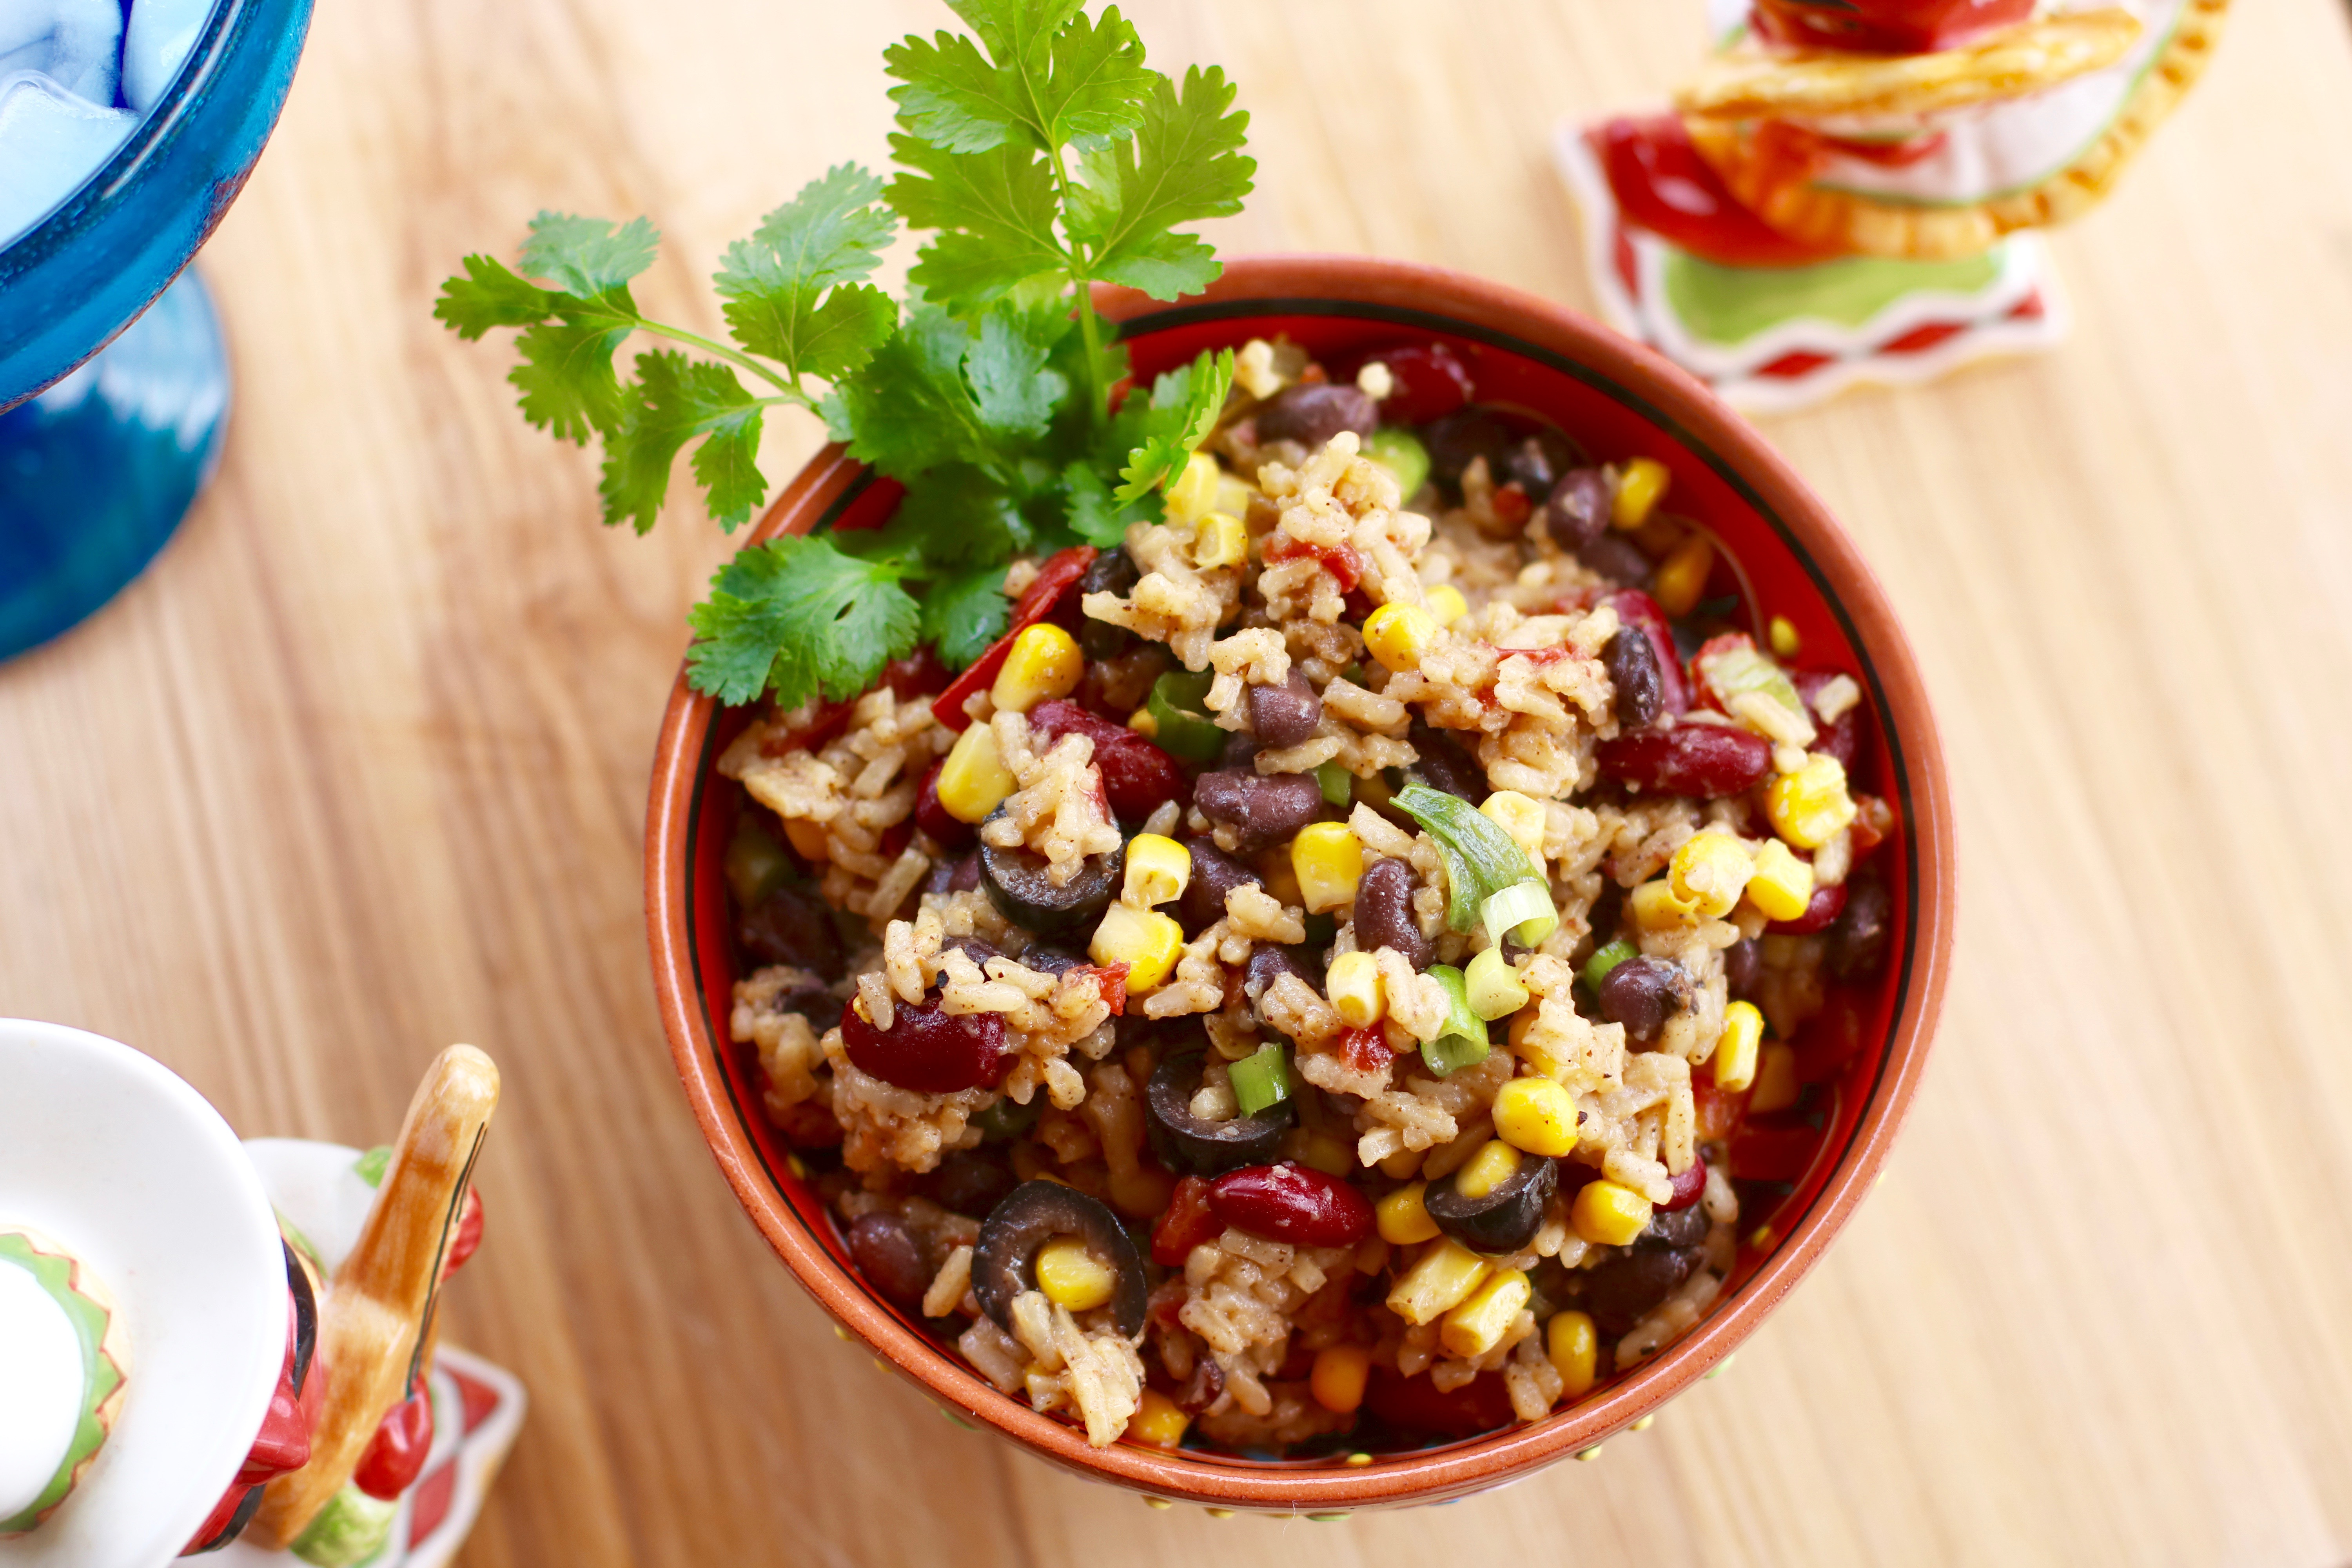 Festive Mexican Rice #Rice #SideDish #RiceDish #Mexican #MexicanRice